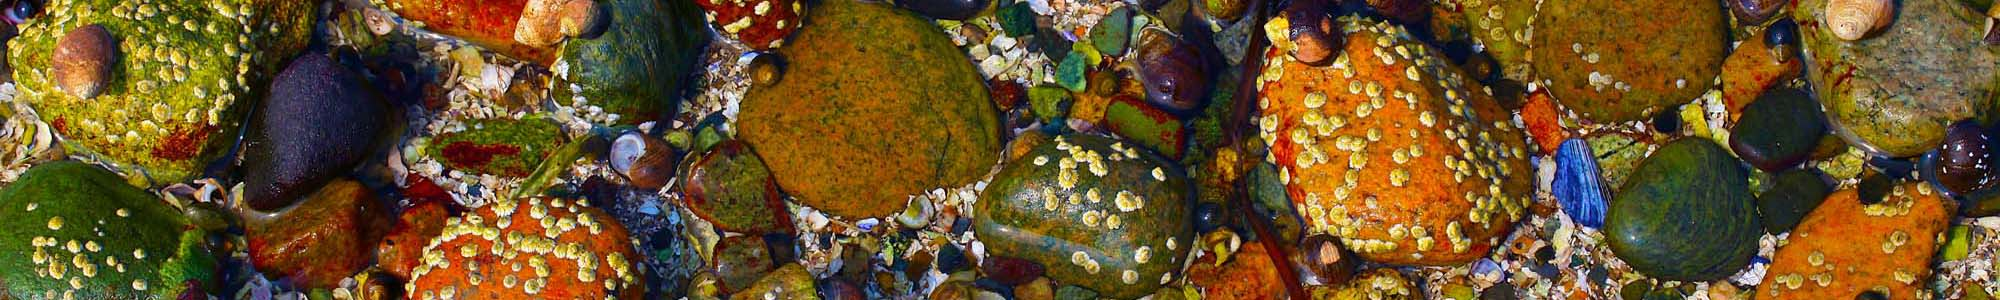 <div class='title'>           Acadia Tide Pools 002bb         </div>